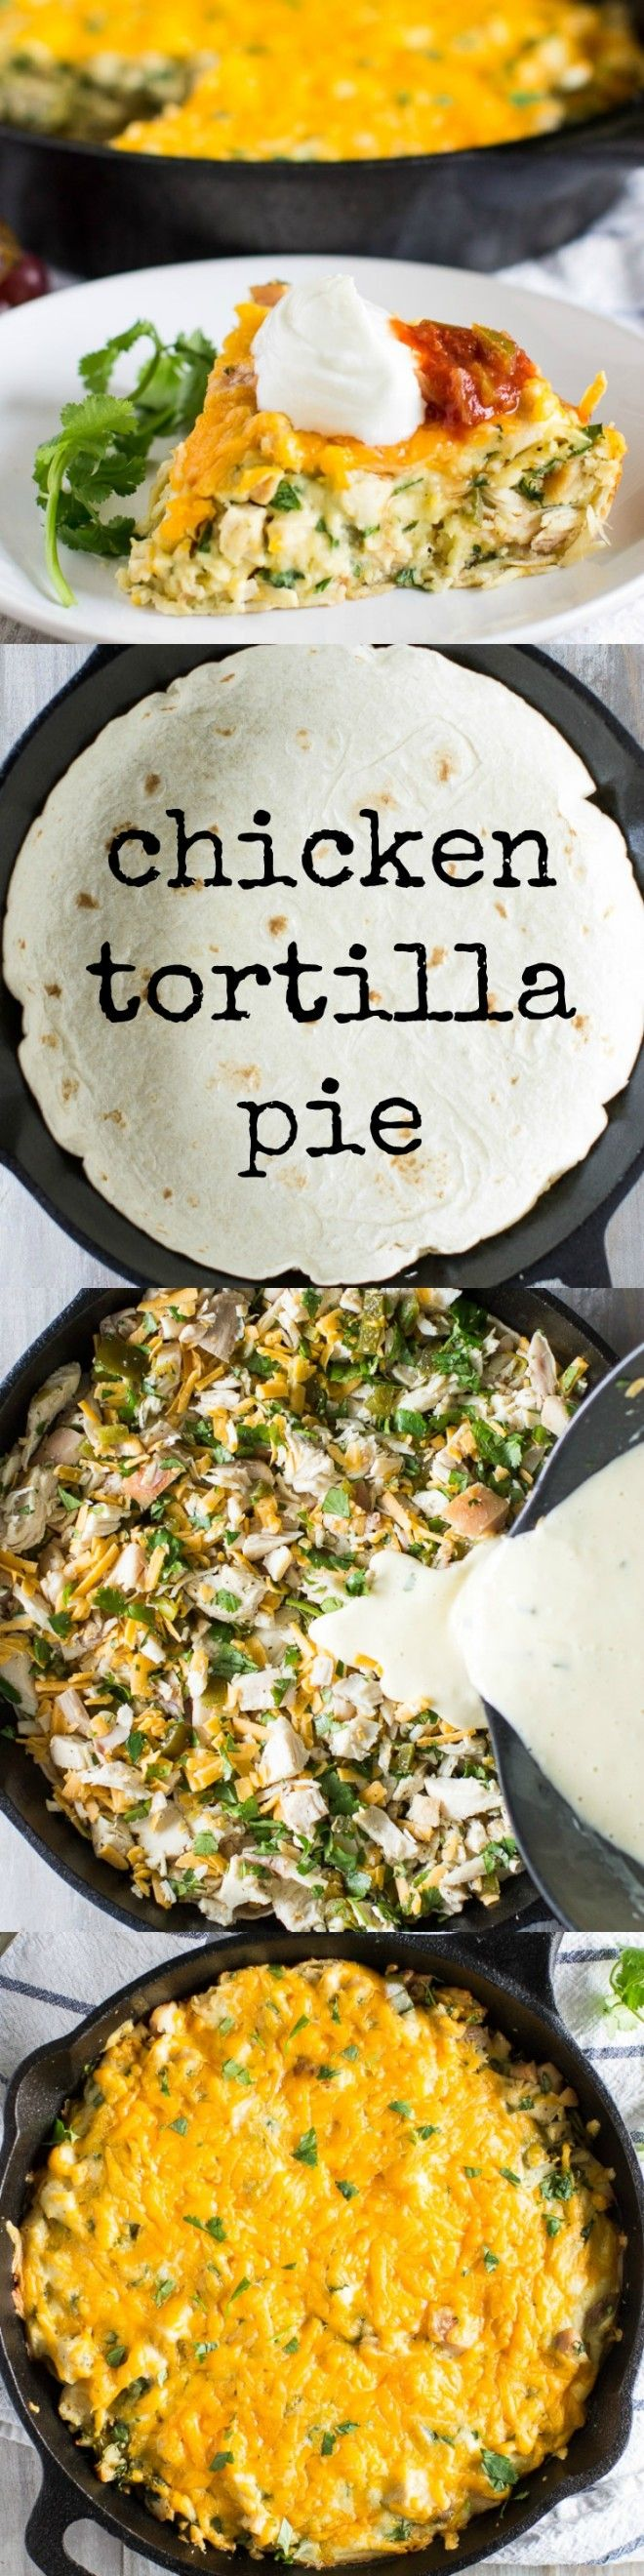 This Chicken Tortilla Pie has the easiest crust ever topped with a cheesy flavorful filling. Best of all it's on the table in 30 minutes or less.